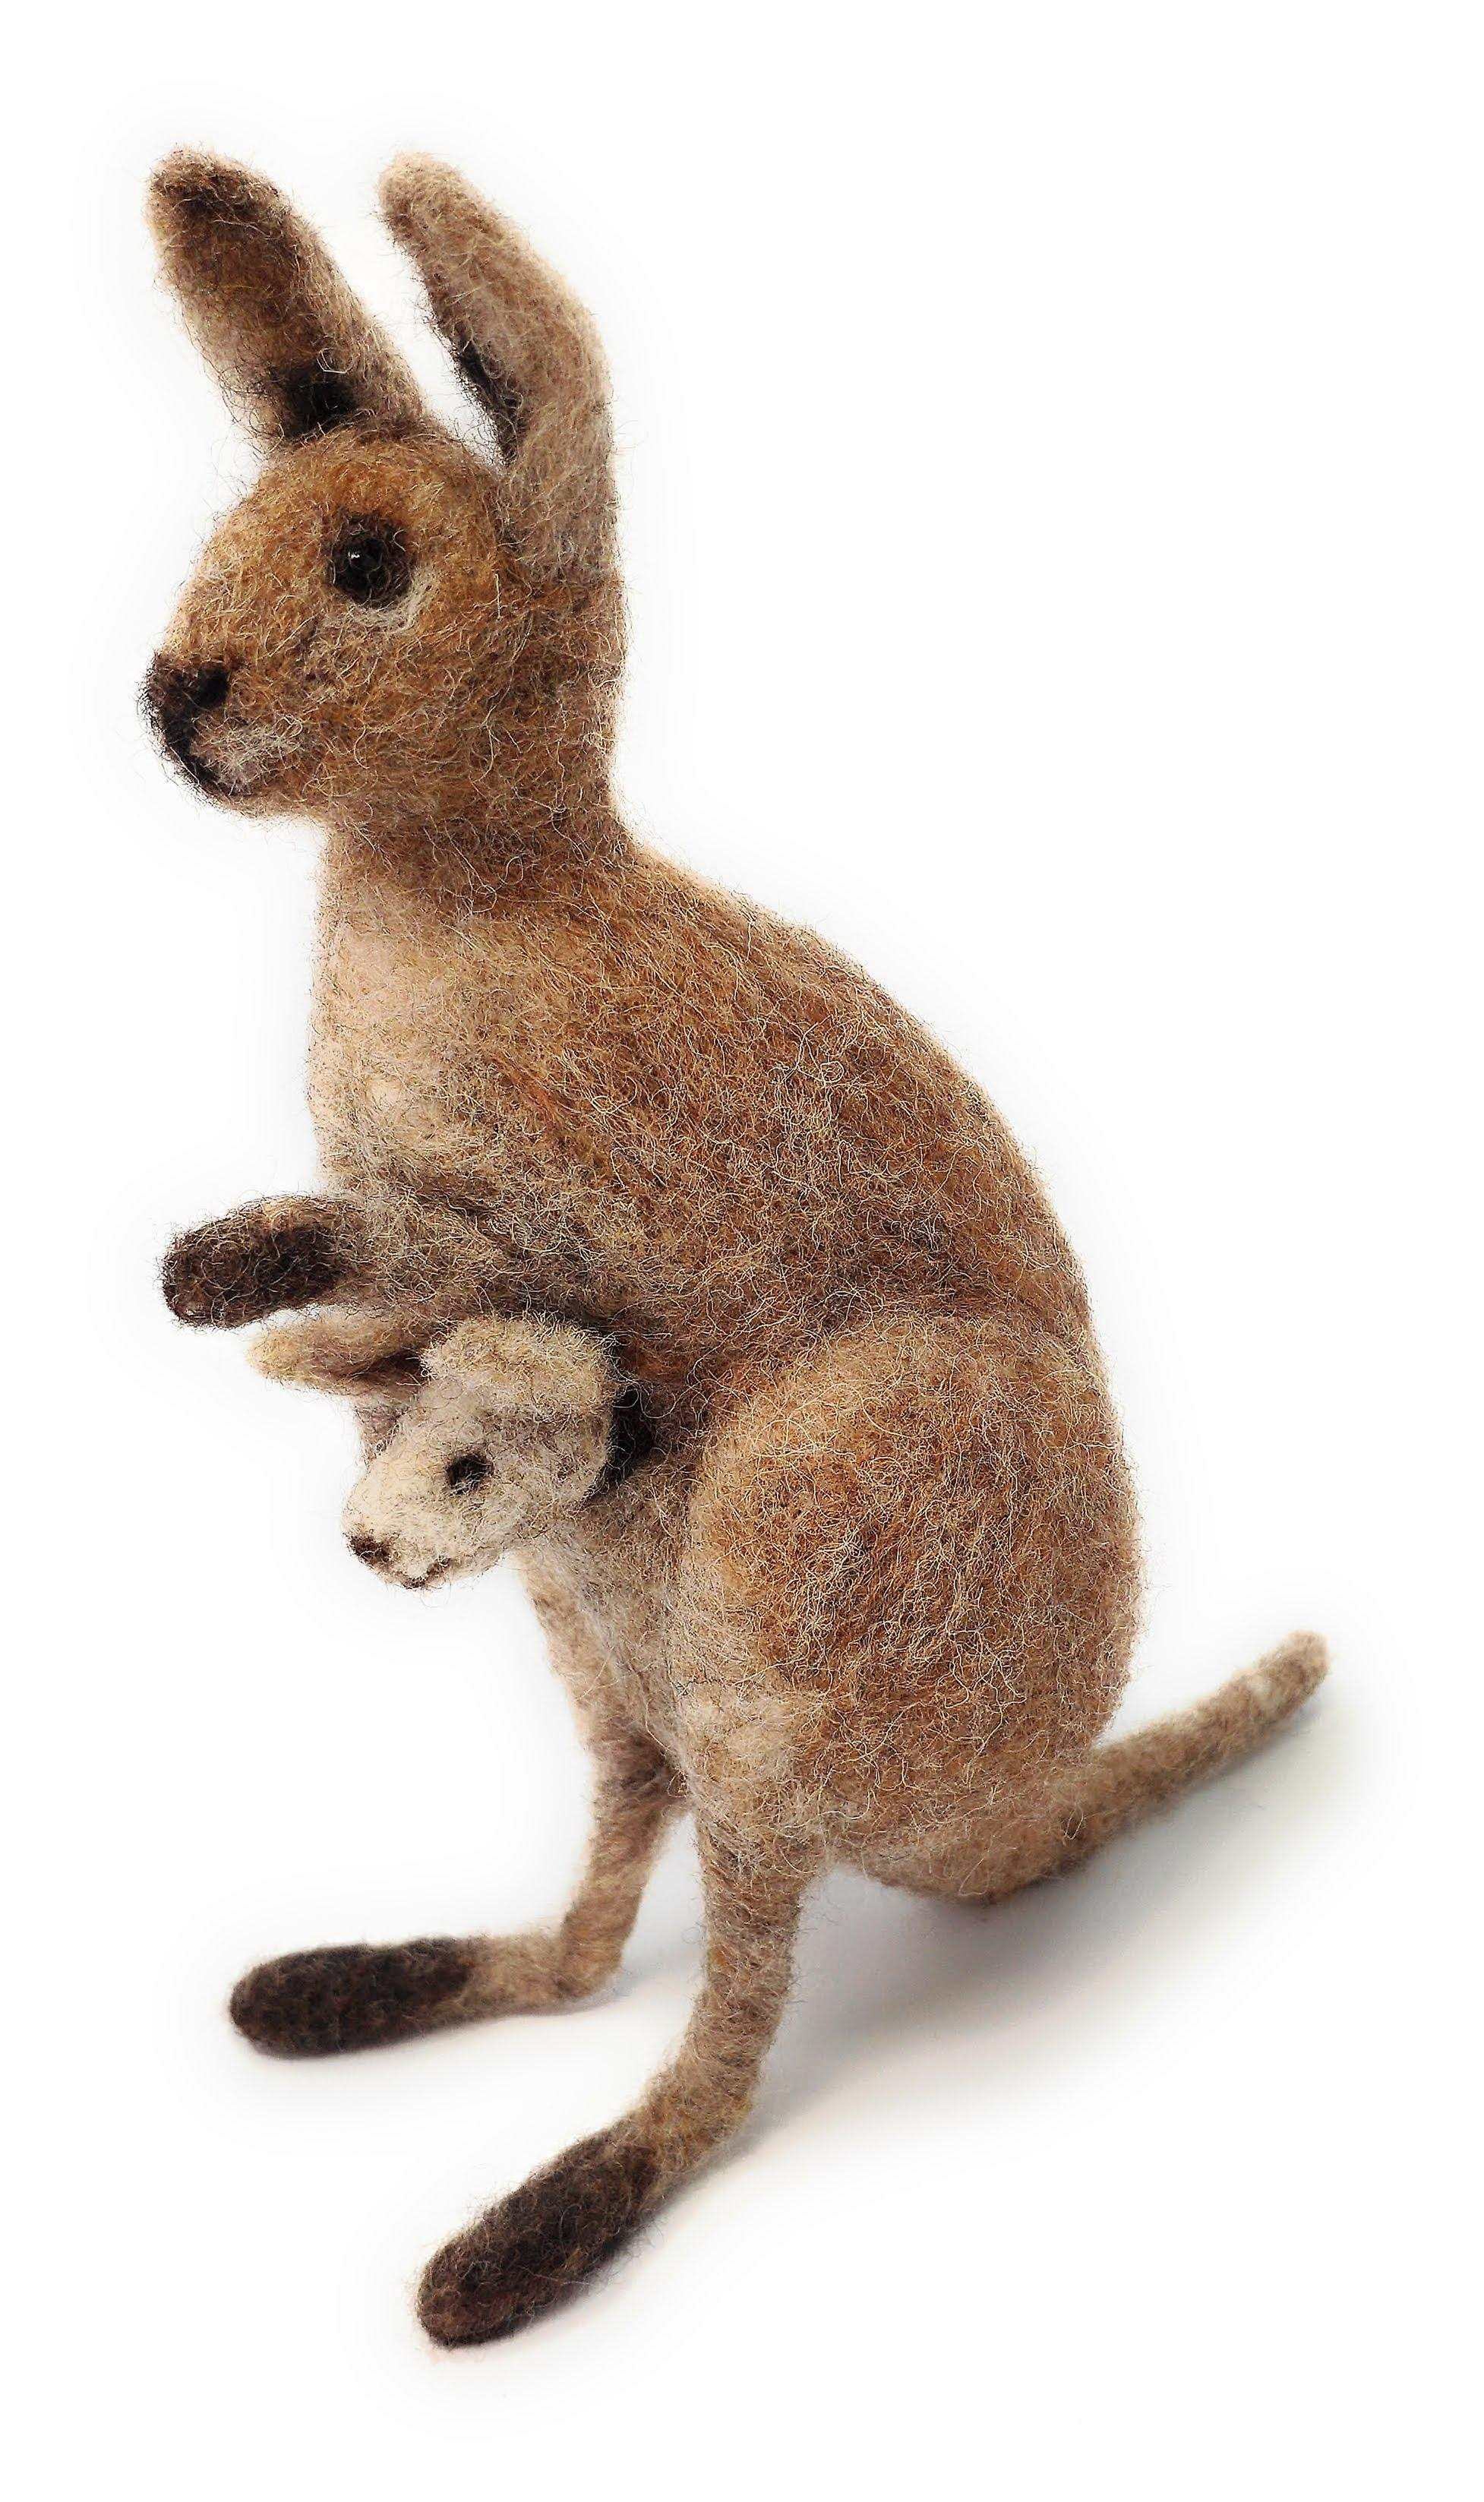 Kangaroo & Joey Needle Felting Kit